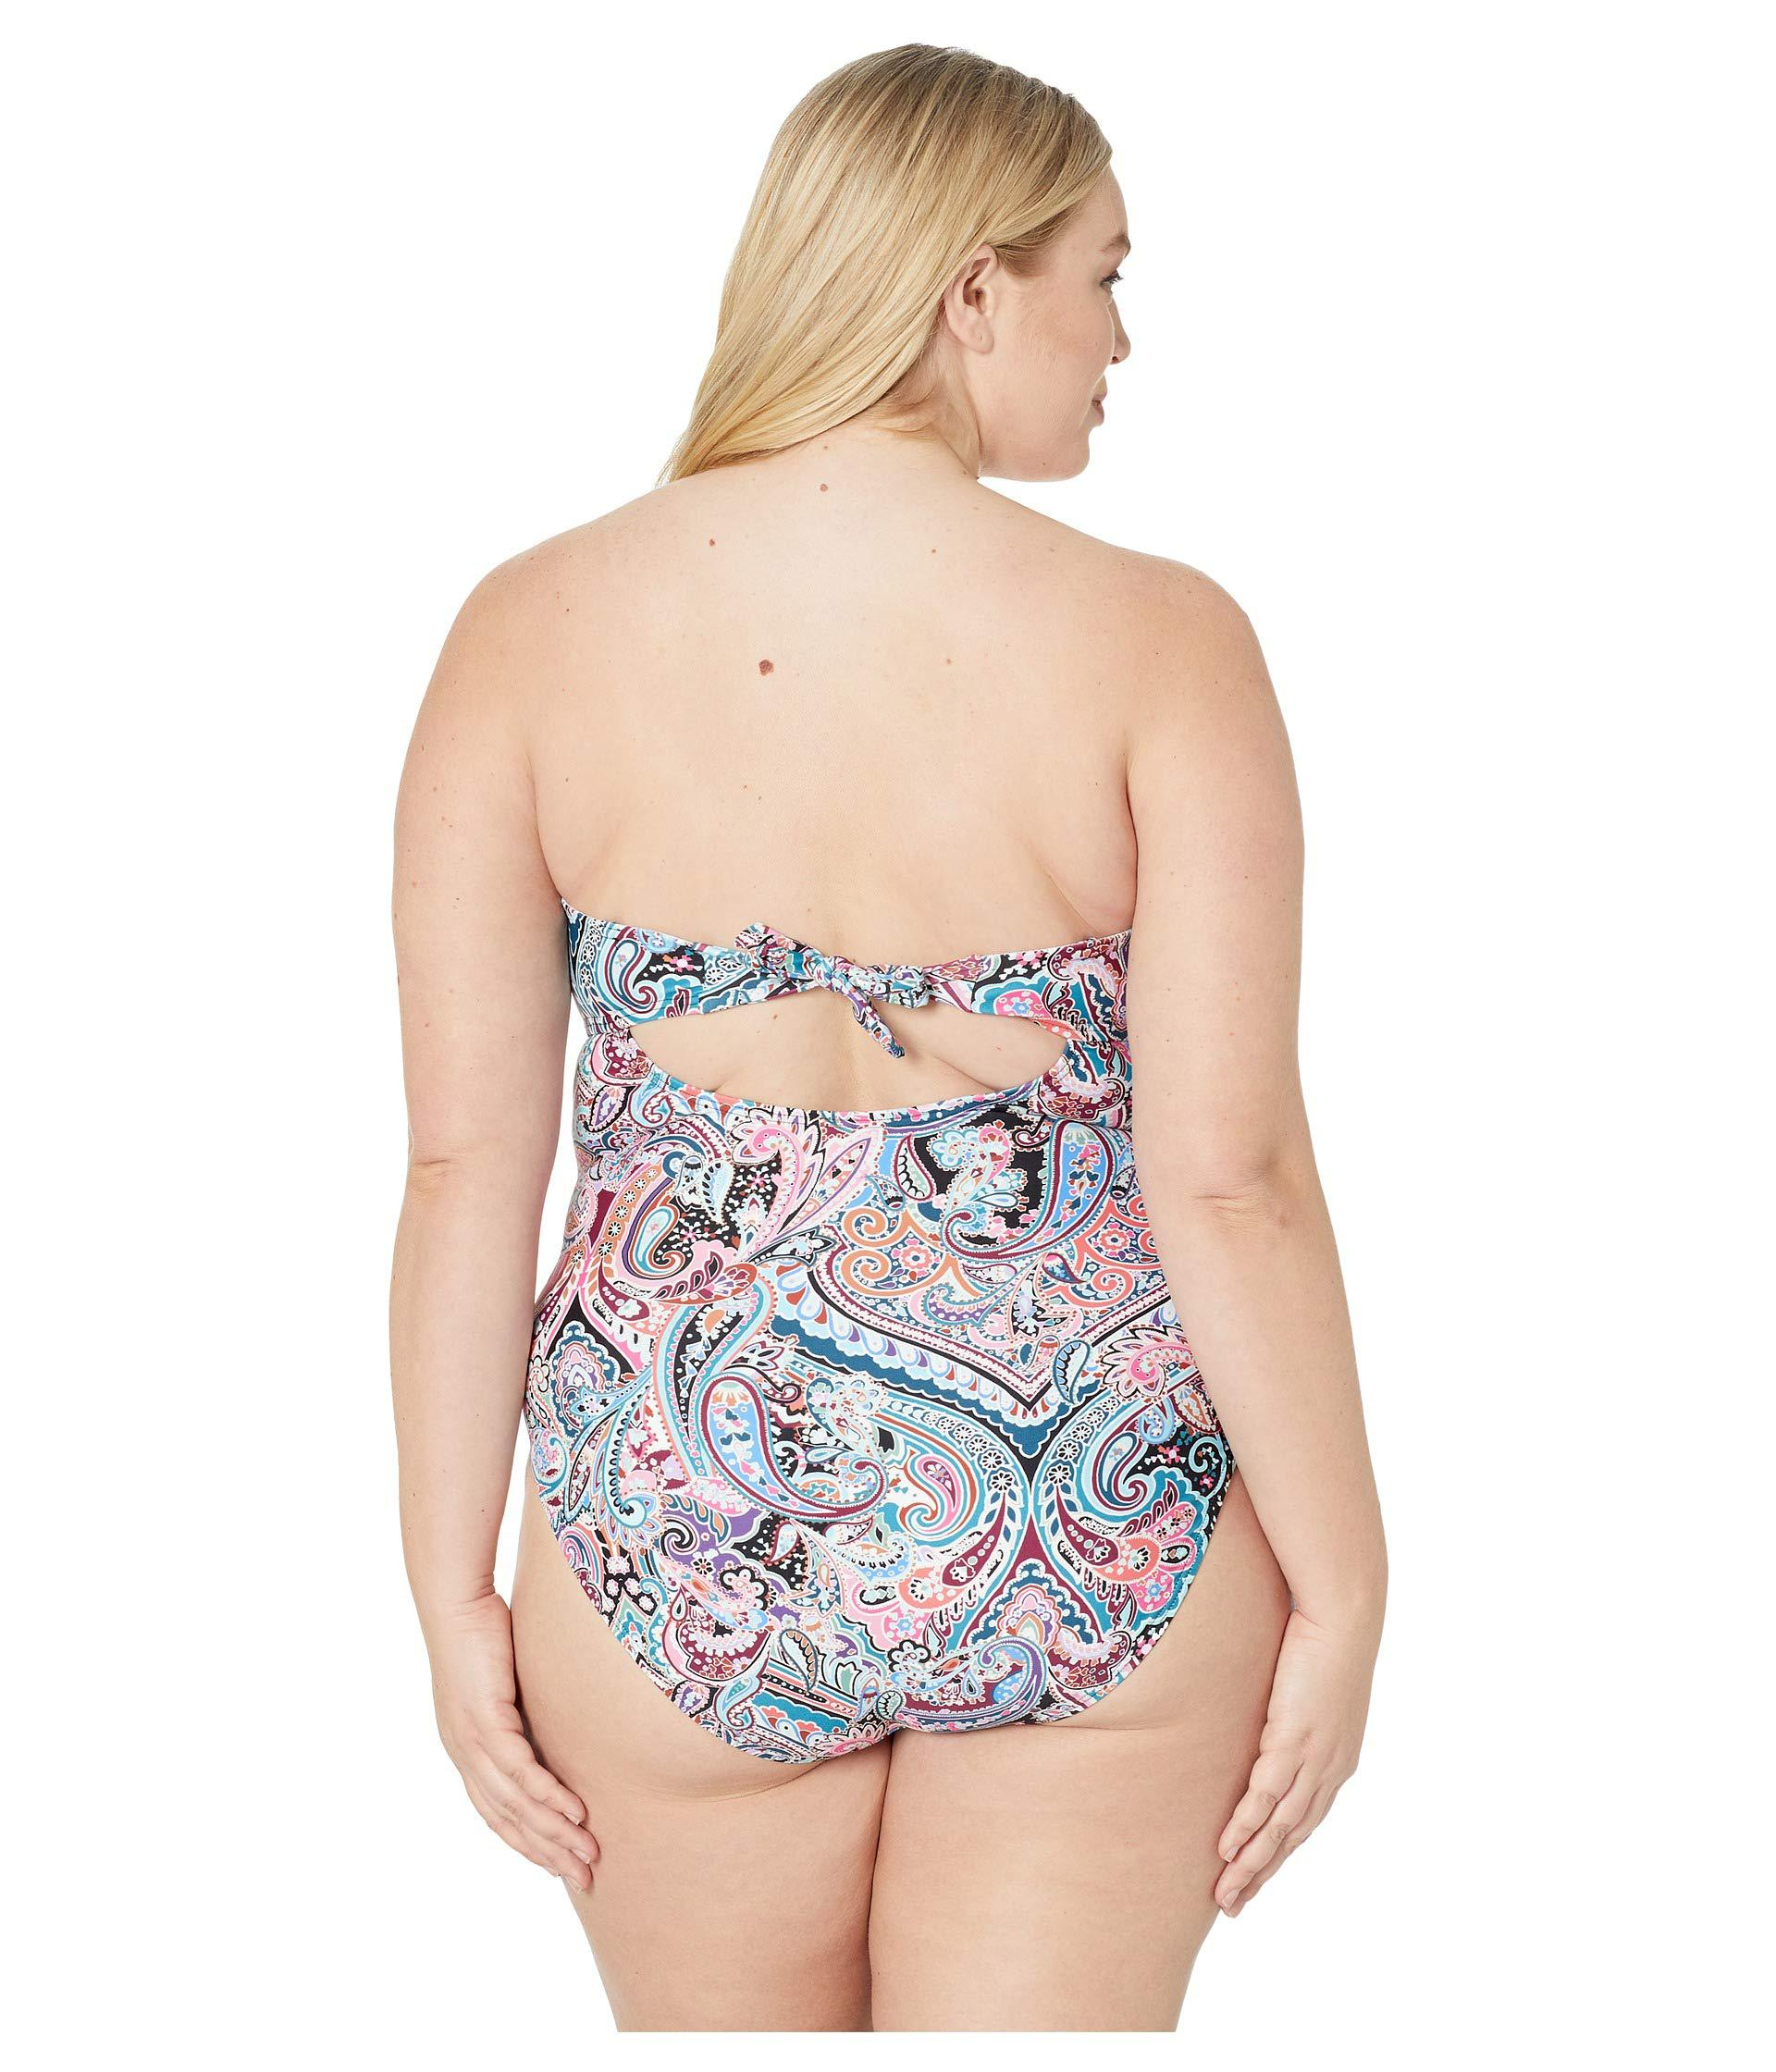 4d2af0e94f La Blanca - Plus Size Swirling Around Bandeau One-piece (multicolored)  Women s Swimsuits. View fullscreen